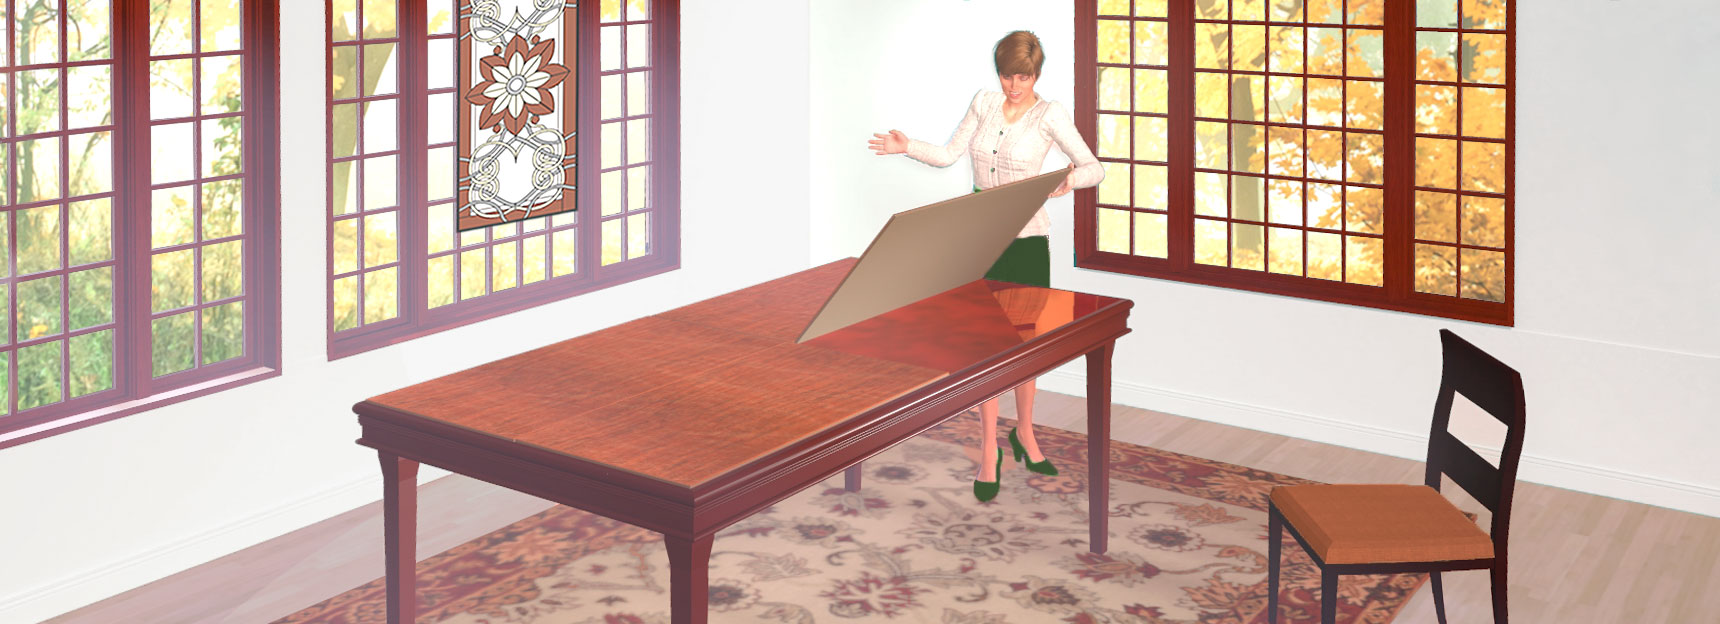 Superior Table Pad Co Inc Table Pads Dining Table Covers - Where to buy protective table pads